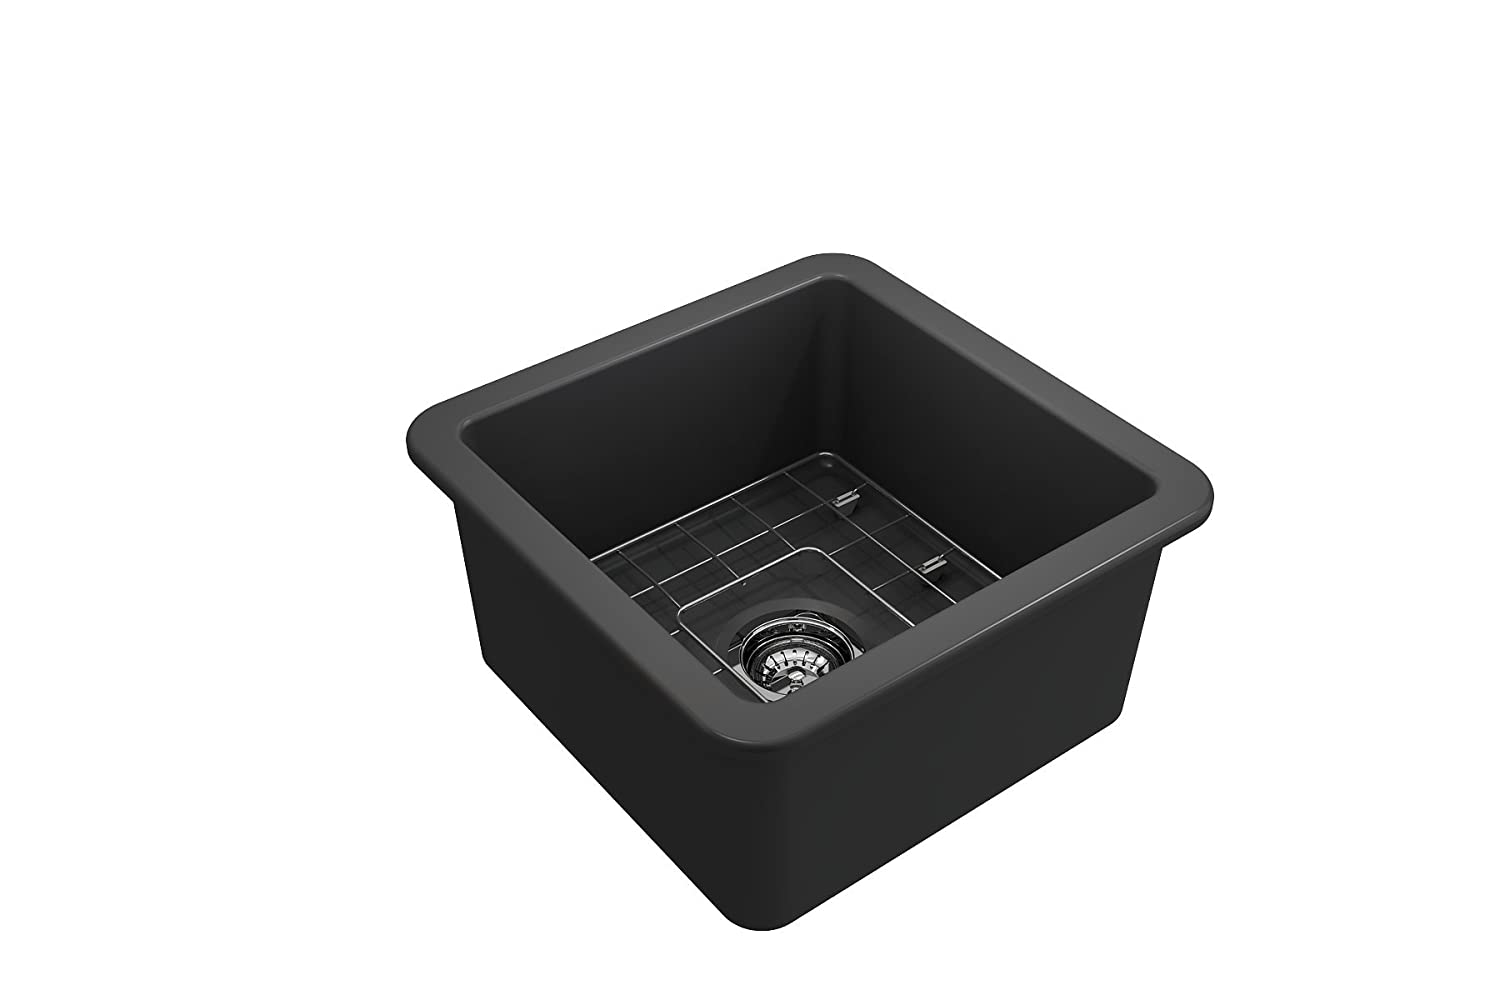 Sotto Undermount Fireclay 18 in Single Bowl Kitchen Sink with Protective Bottom Grid and Strainer in M.Dark Gray BOCCHI 1359-020-0120